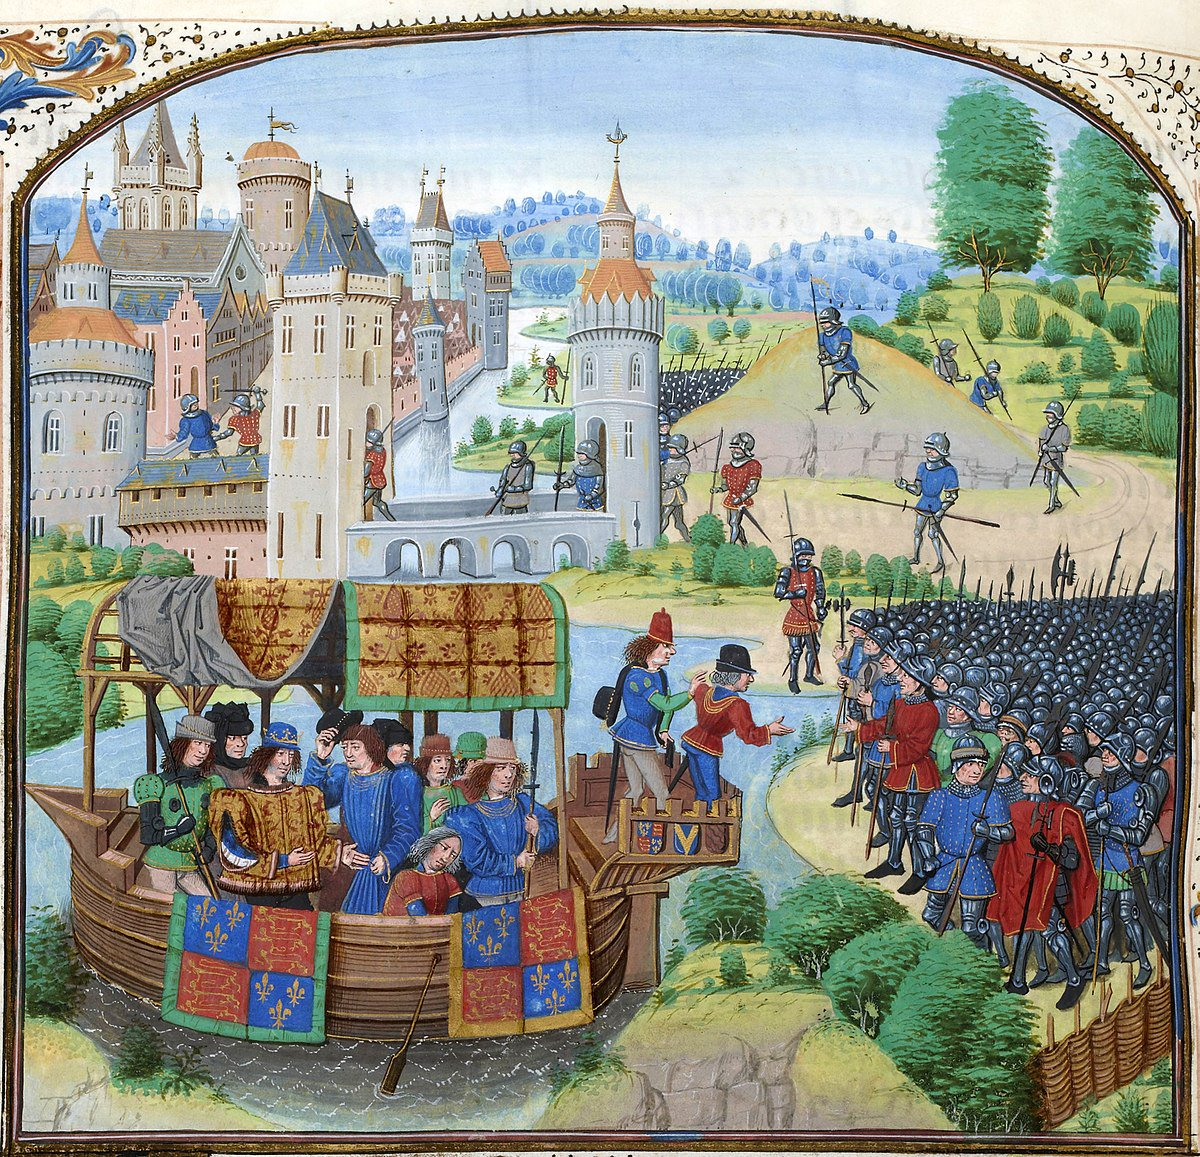 May 30 1381 - Peasants in Essex refuse to pay the Poll Tax and begin a mass rebellion that came close to ending the reign of Richard II. bookmarksbookshop.co.uk/view/46096/%25…